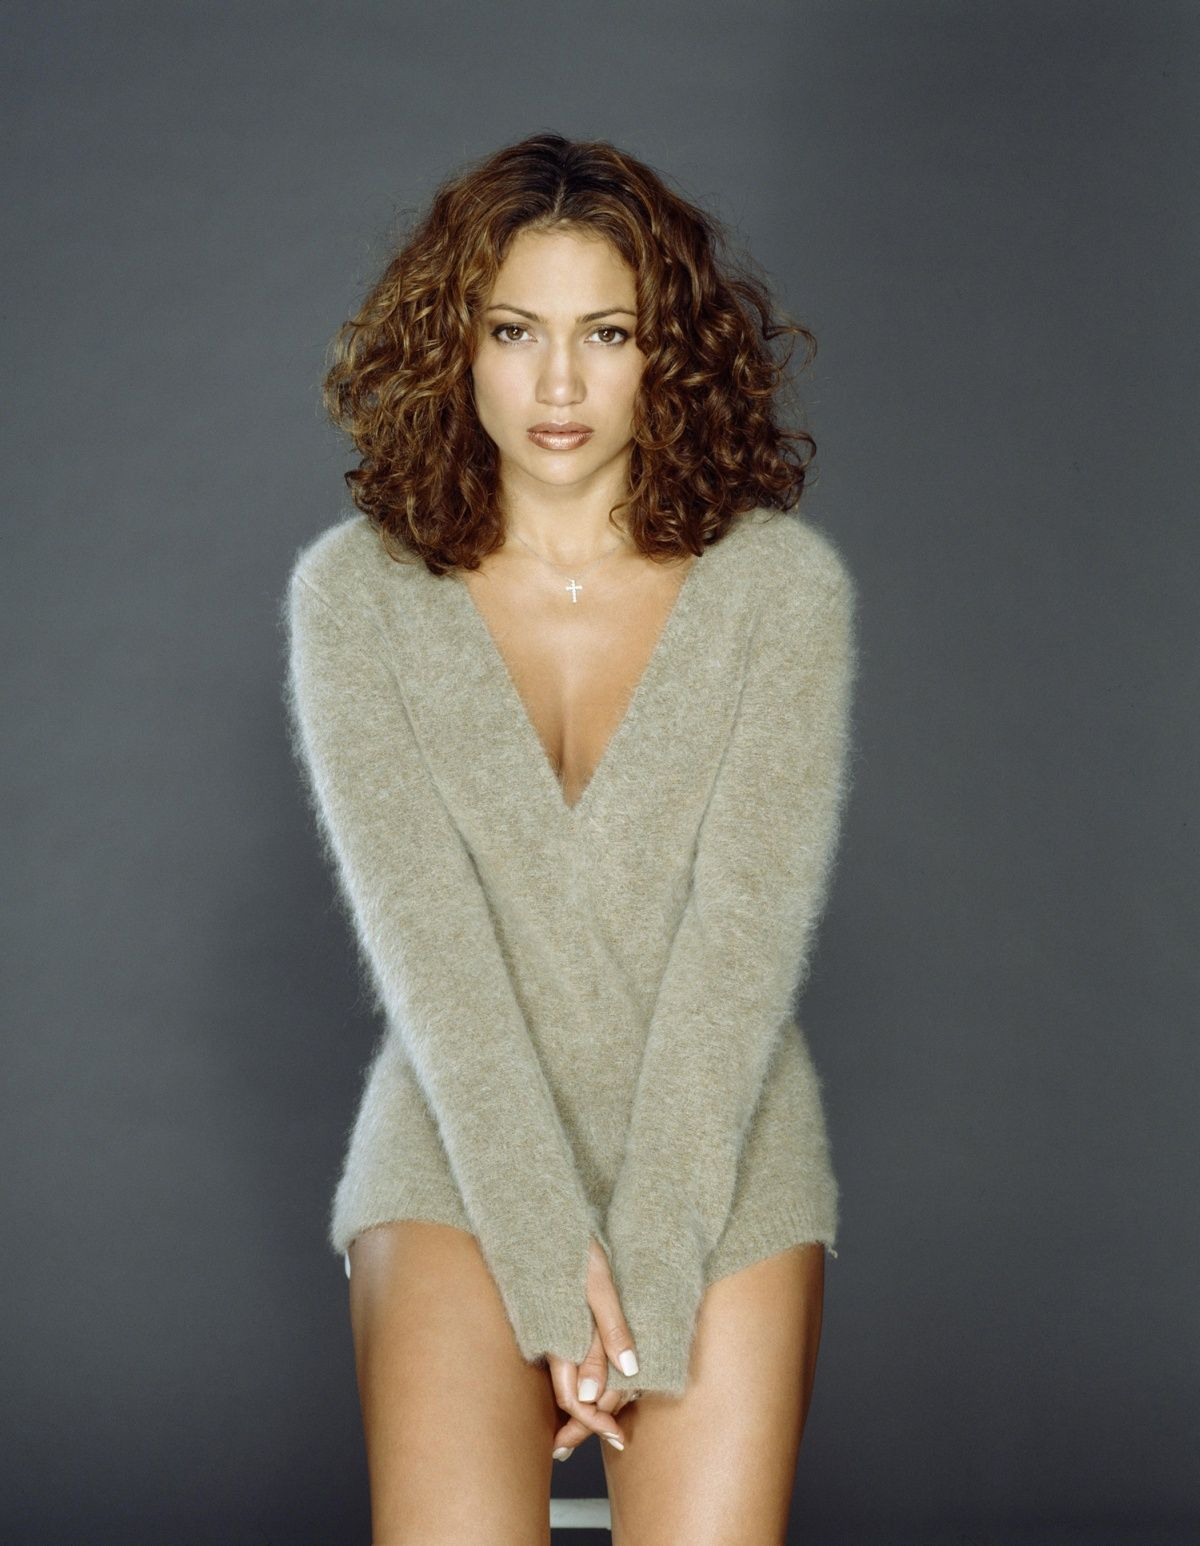 Best from the Past - JENNIFER LOPEZ for FHM Magazine, 1998